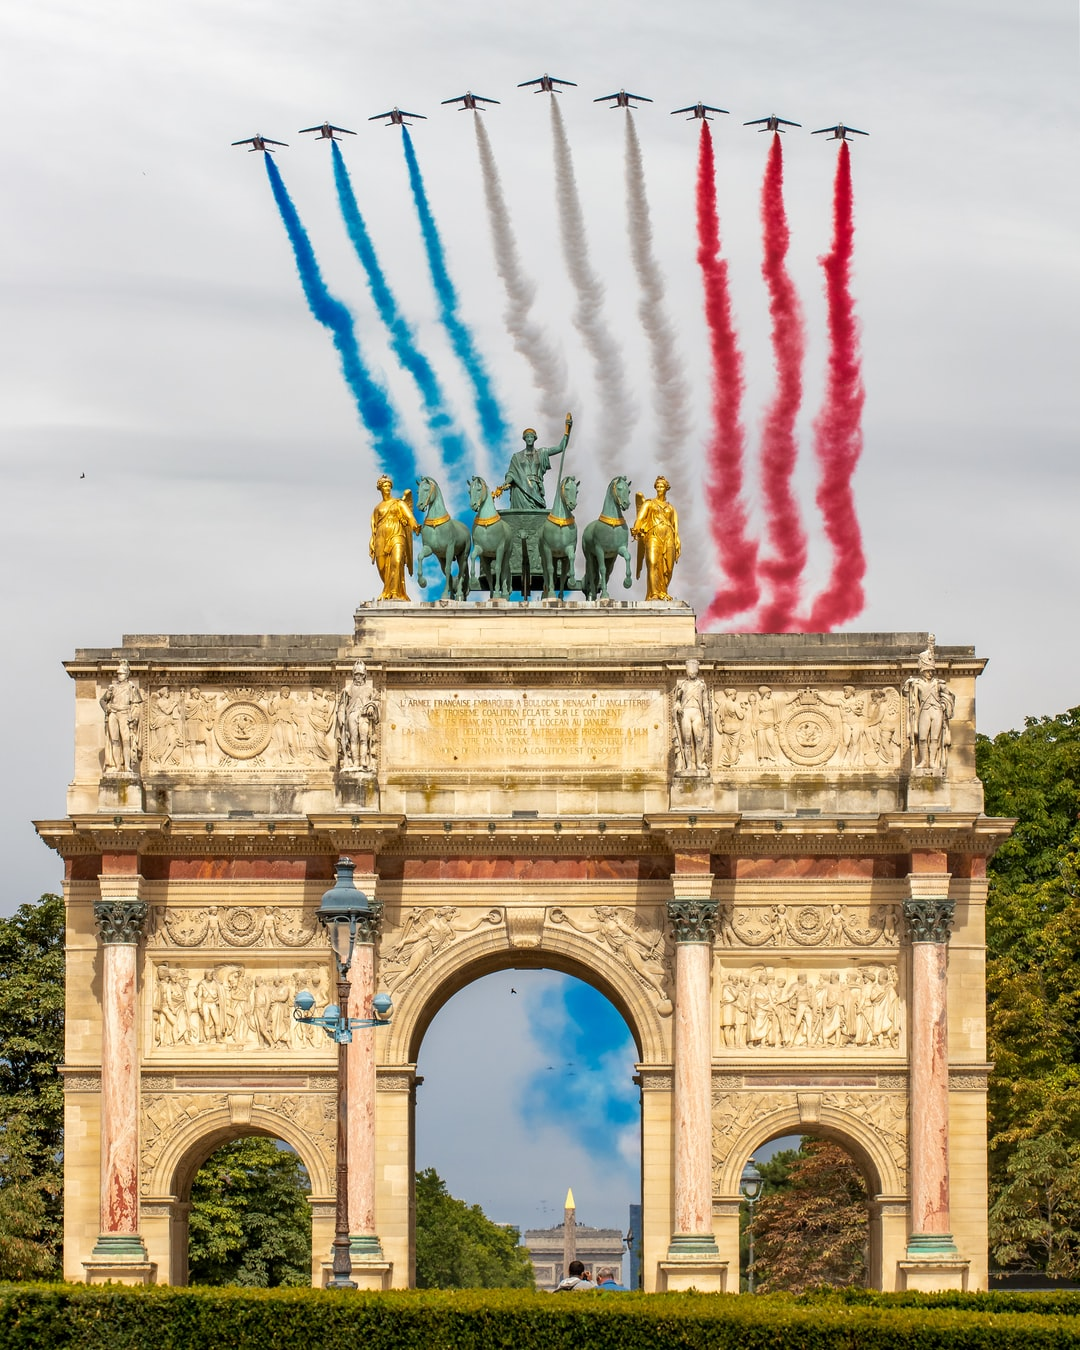 The Arc de triomphe du carrousel with the French Acrobatic Patrol on Bastille Day